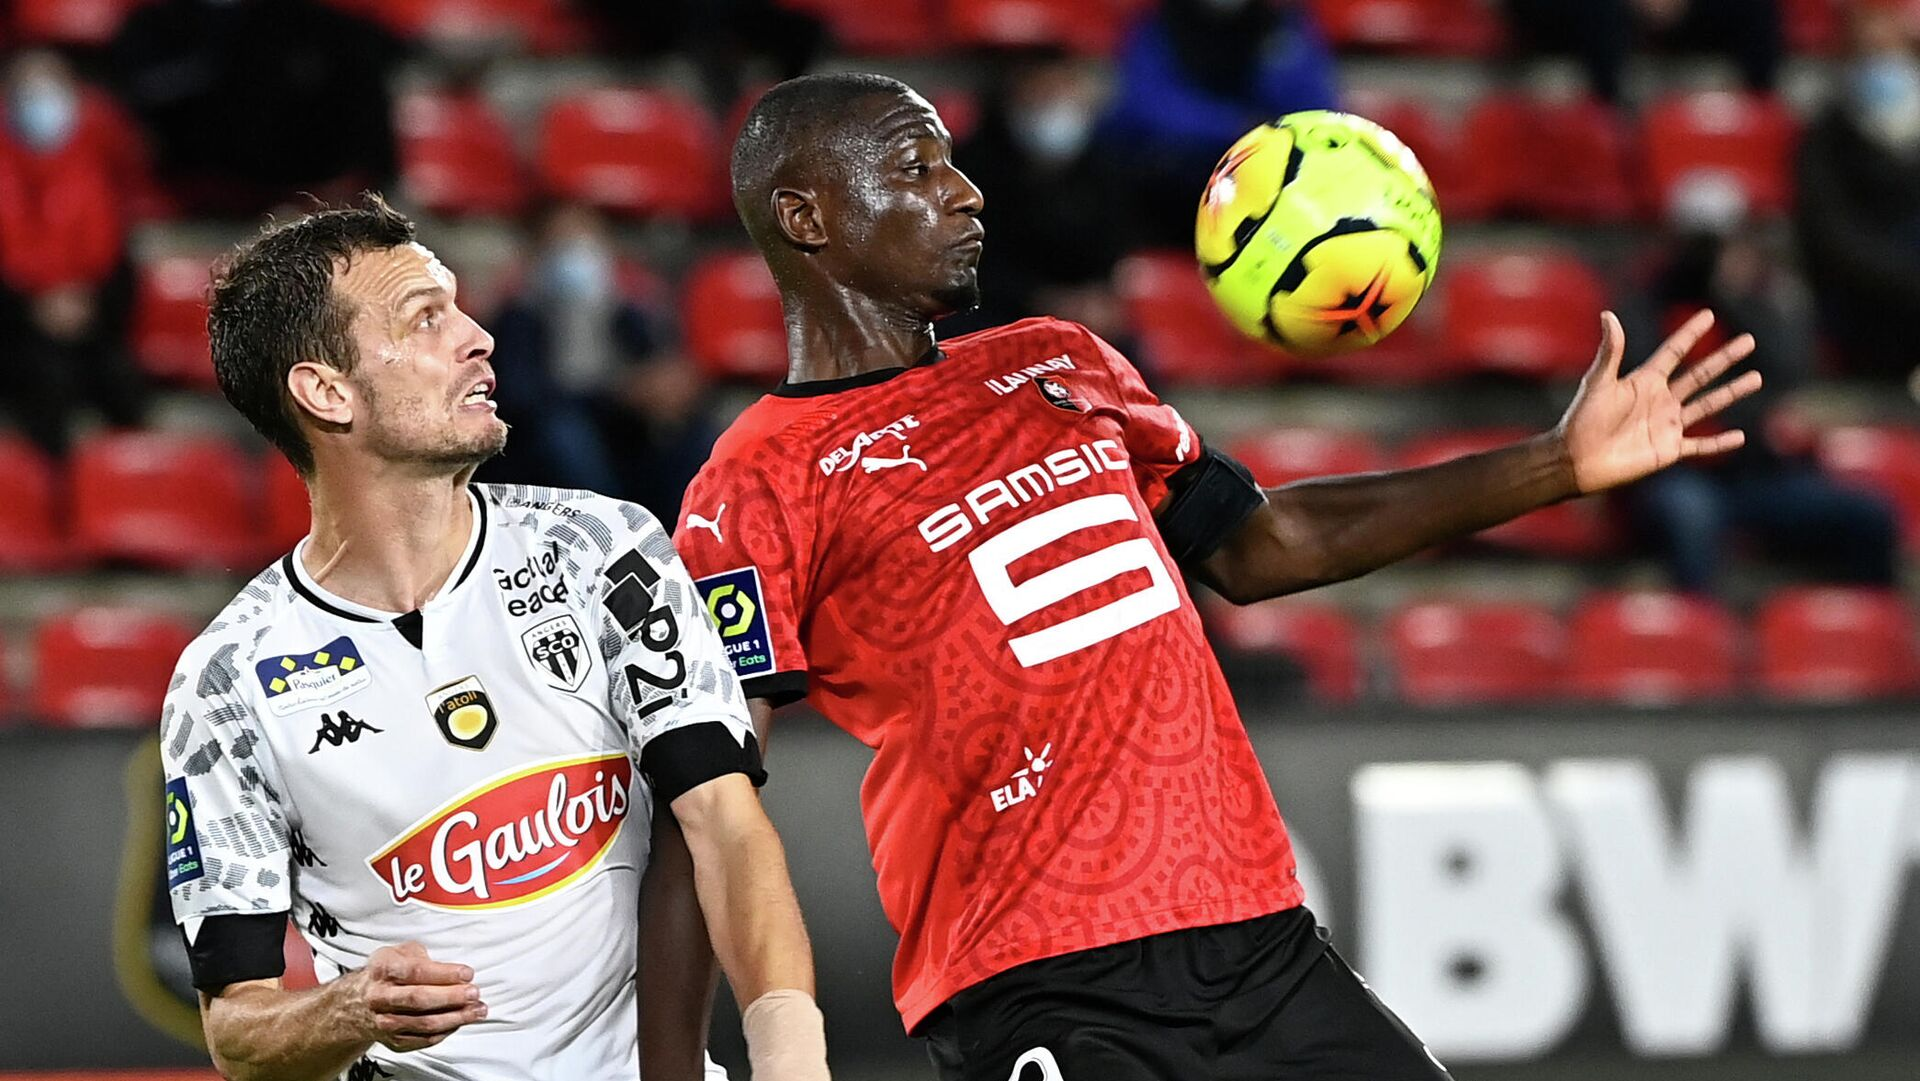 Stade Rennais' French forward Serhou Guirassy (R) vies with Angers' French defender Romain Thomas during the French L1 football match between Stade Rennais and Angers, at the Roazhon Park stadium in Rennes, northwestern France on October 23, 2020. (Photo by DAMIEN MEYER / AFP) - РИА Новости, 1920, 24.10.2020